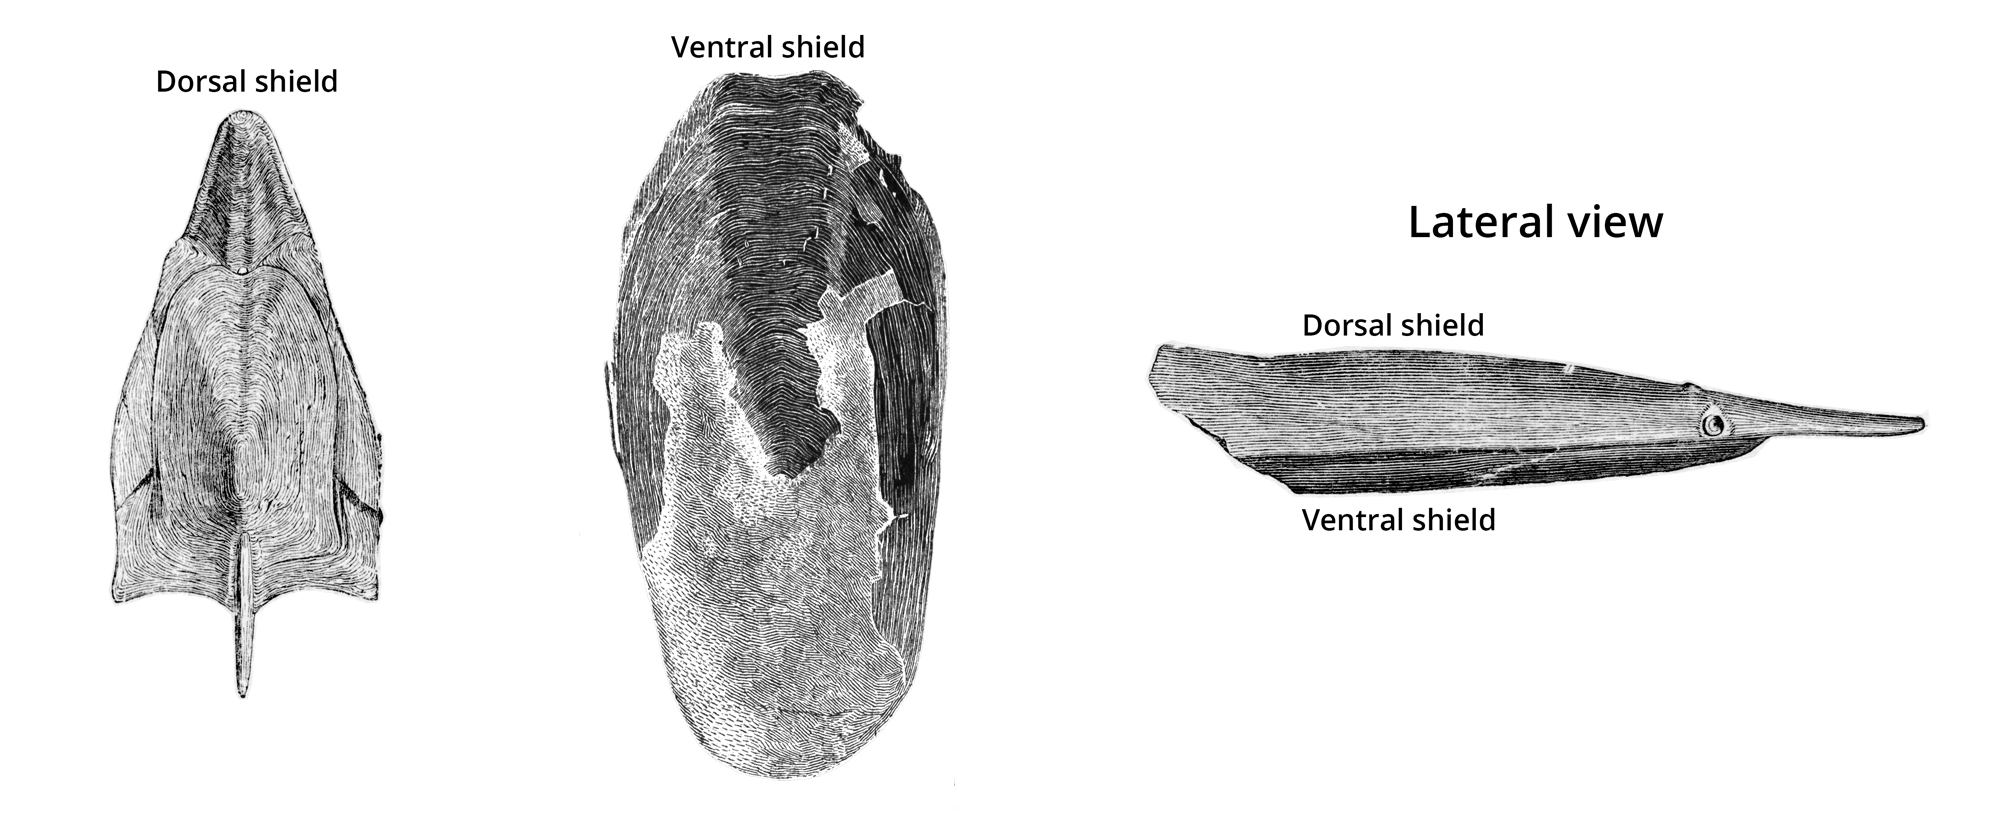 Image showing the dorsal and ventral headshields of Pteraspidomorphs.